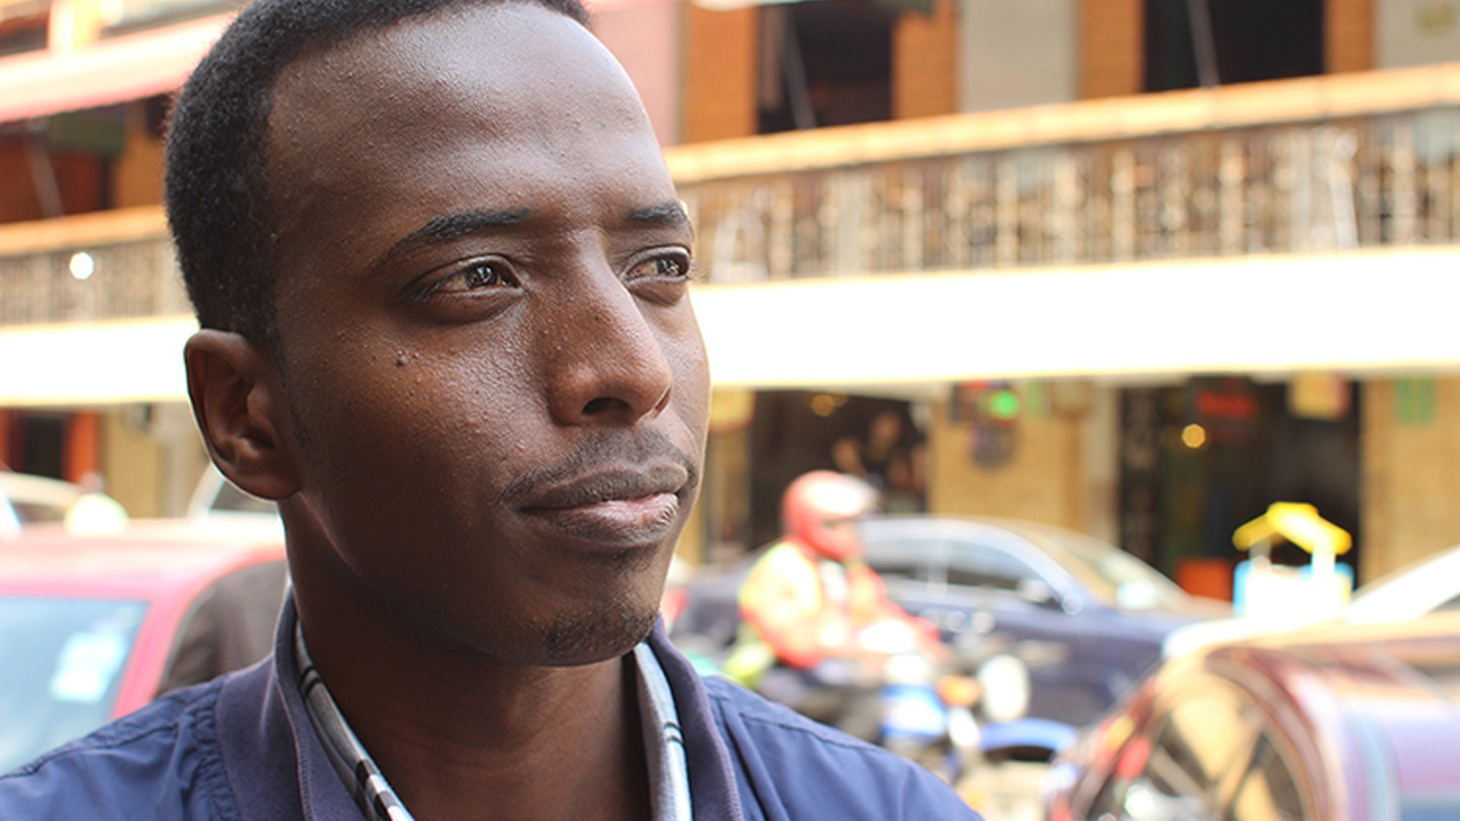 Abdi is a refugee in Kenya. He's from Somalia, one of the most dangerous countries in the world, and he's always dreamed of coming to America. One day, he gets the luckiest break of his life: he wins a lottery putting him on a short list for a US visa...